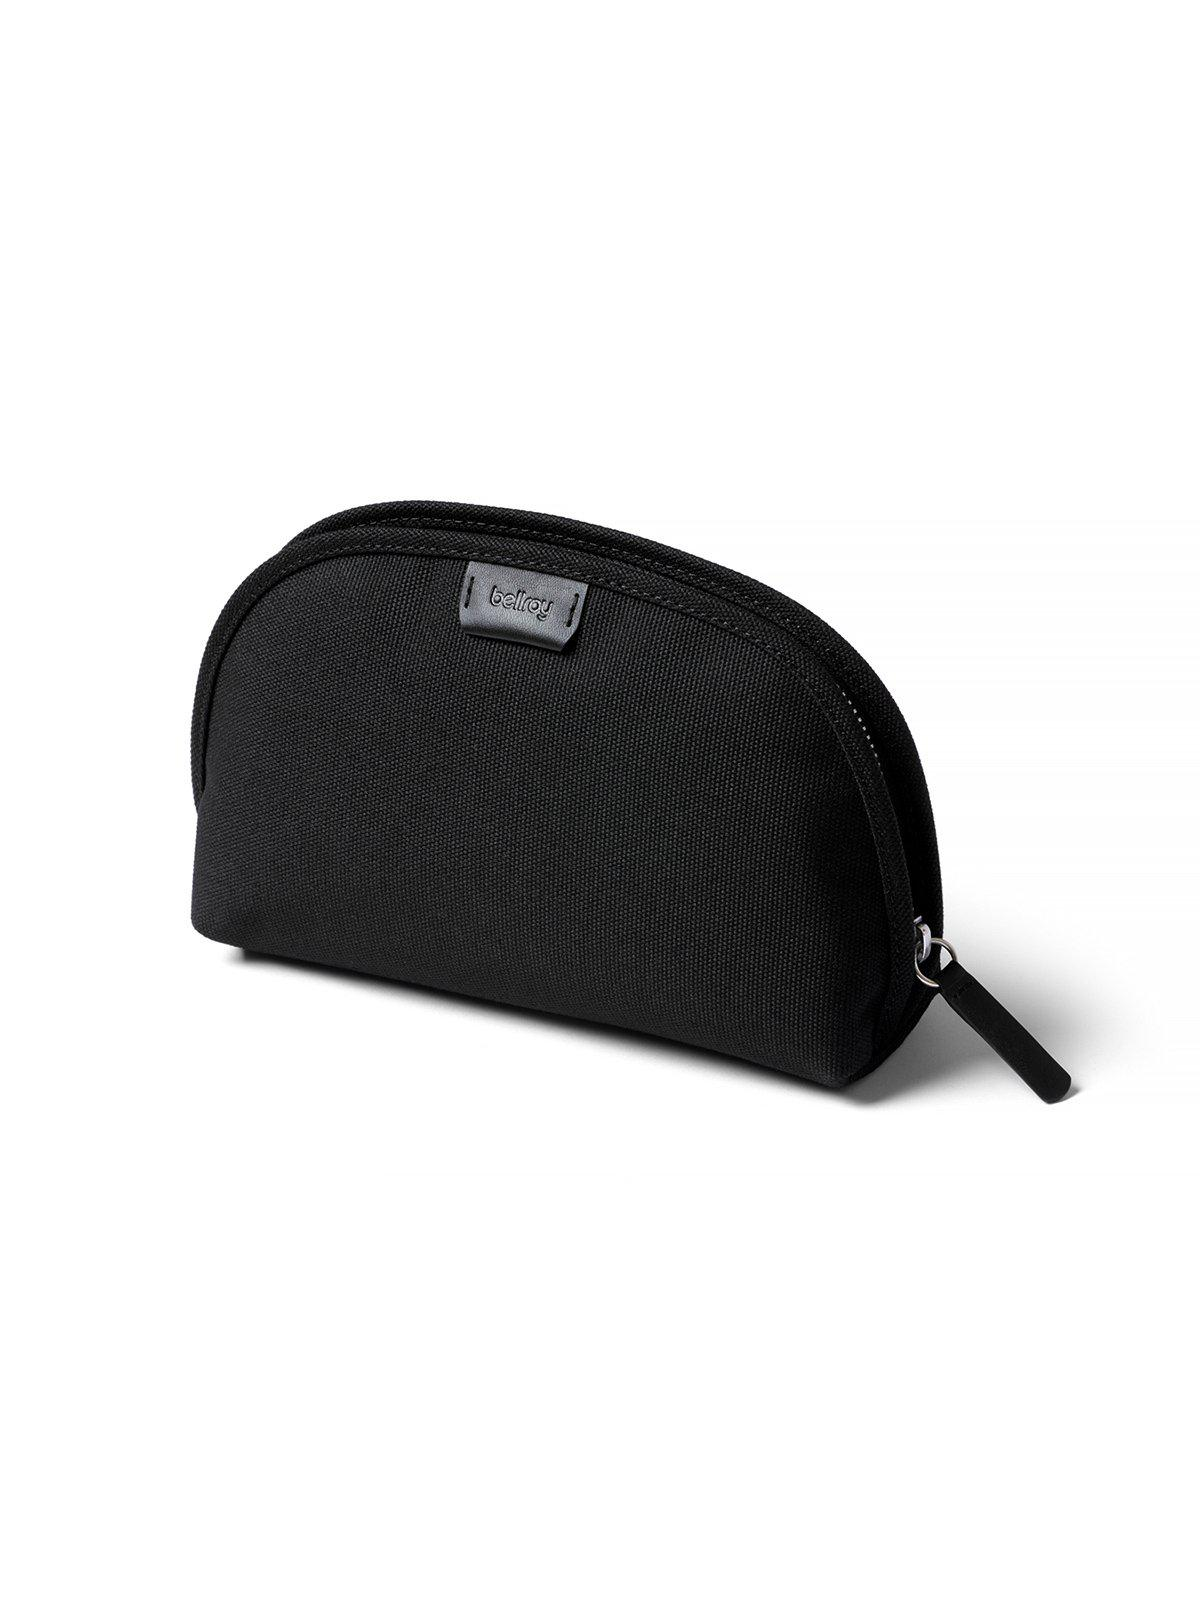 Bellroy Classic Pouch Woven Black - MORE by Morello - Indonesia